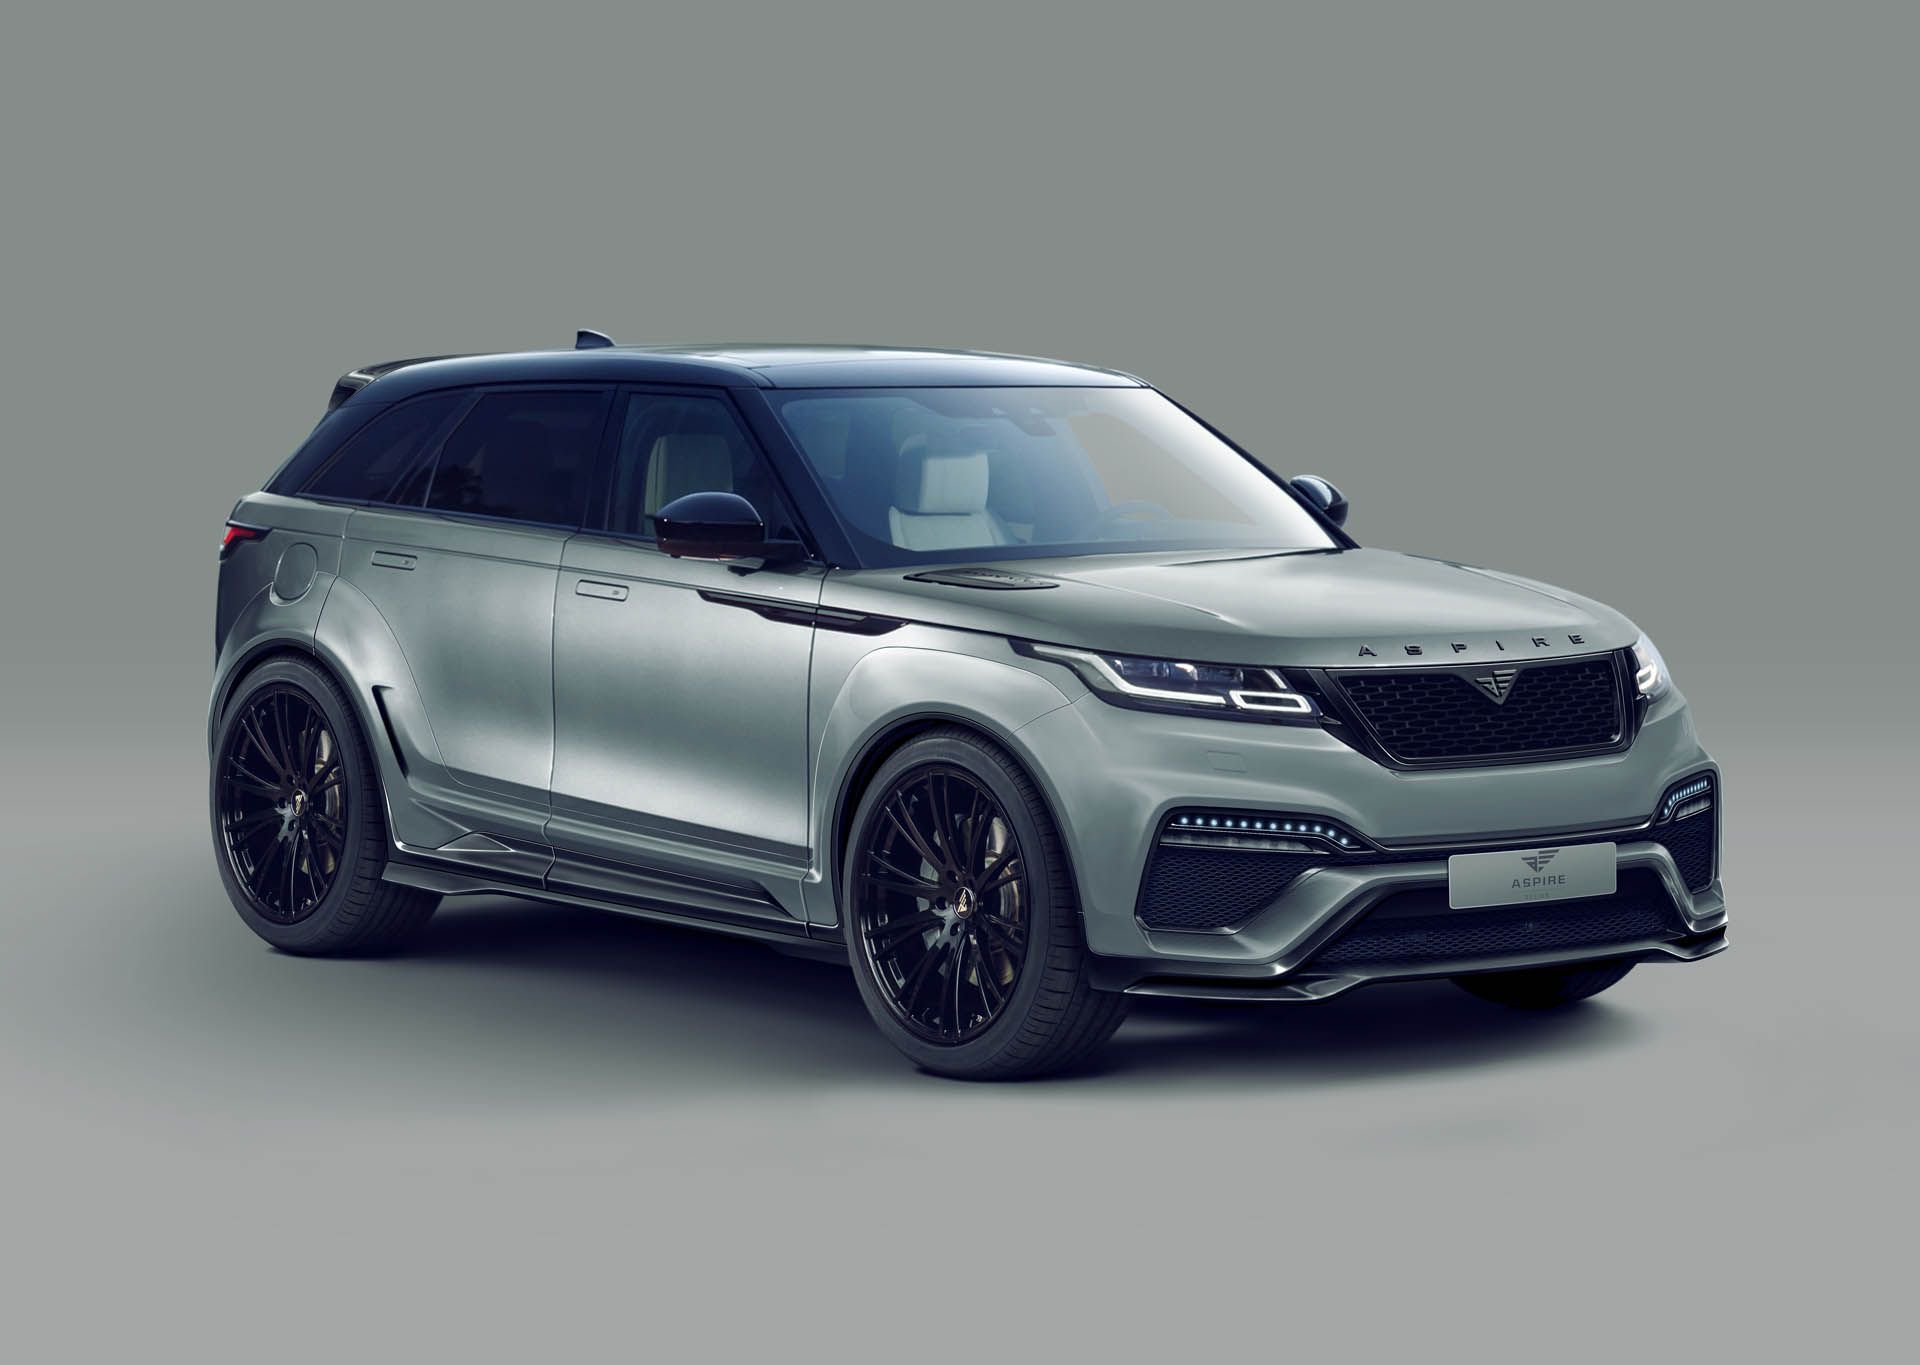 Range Rover Velar by Aspire Design (12)